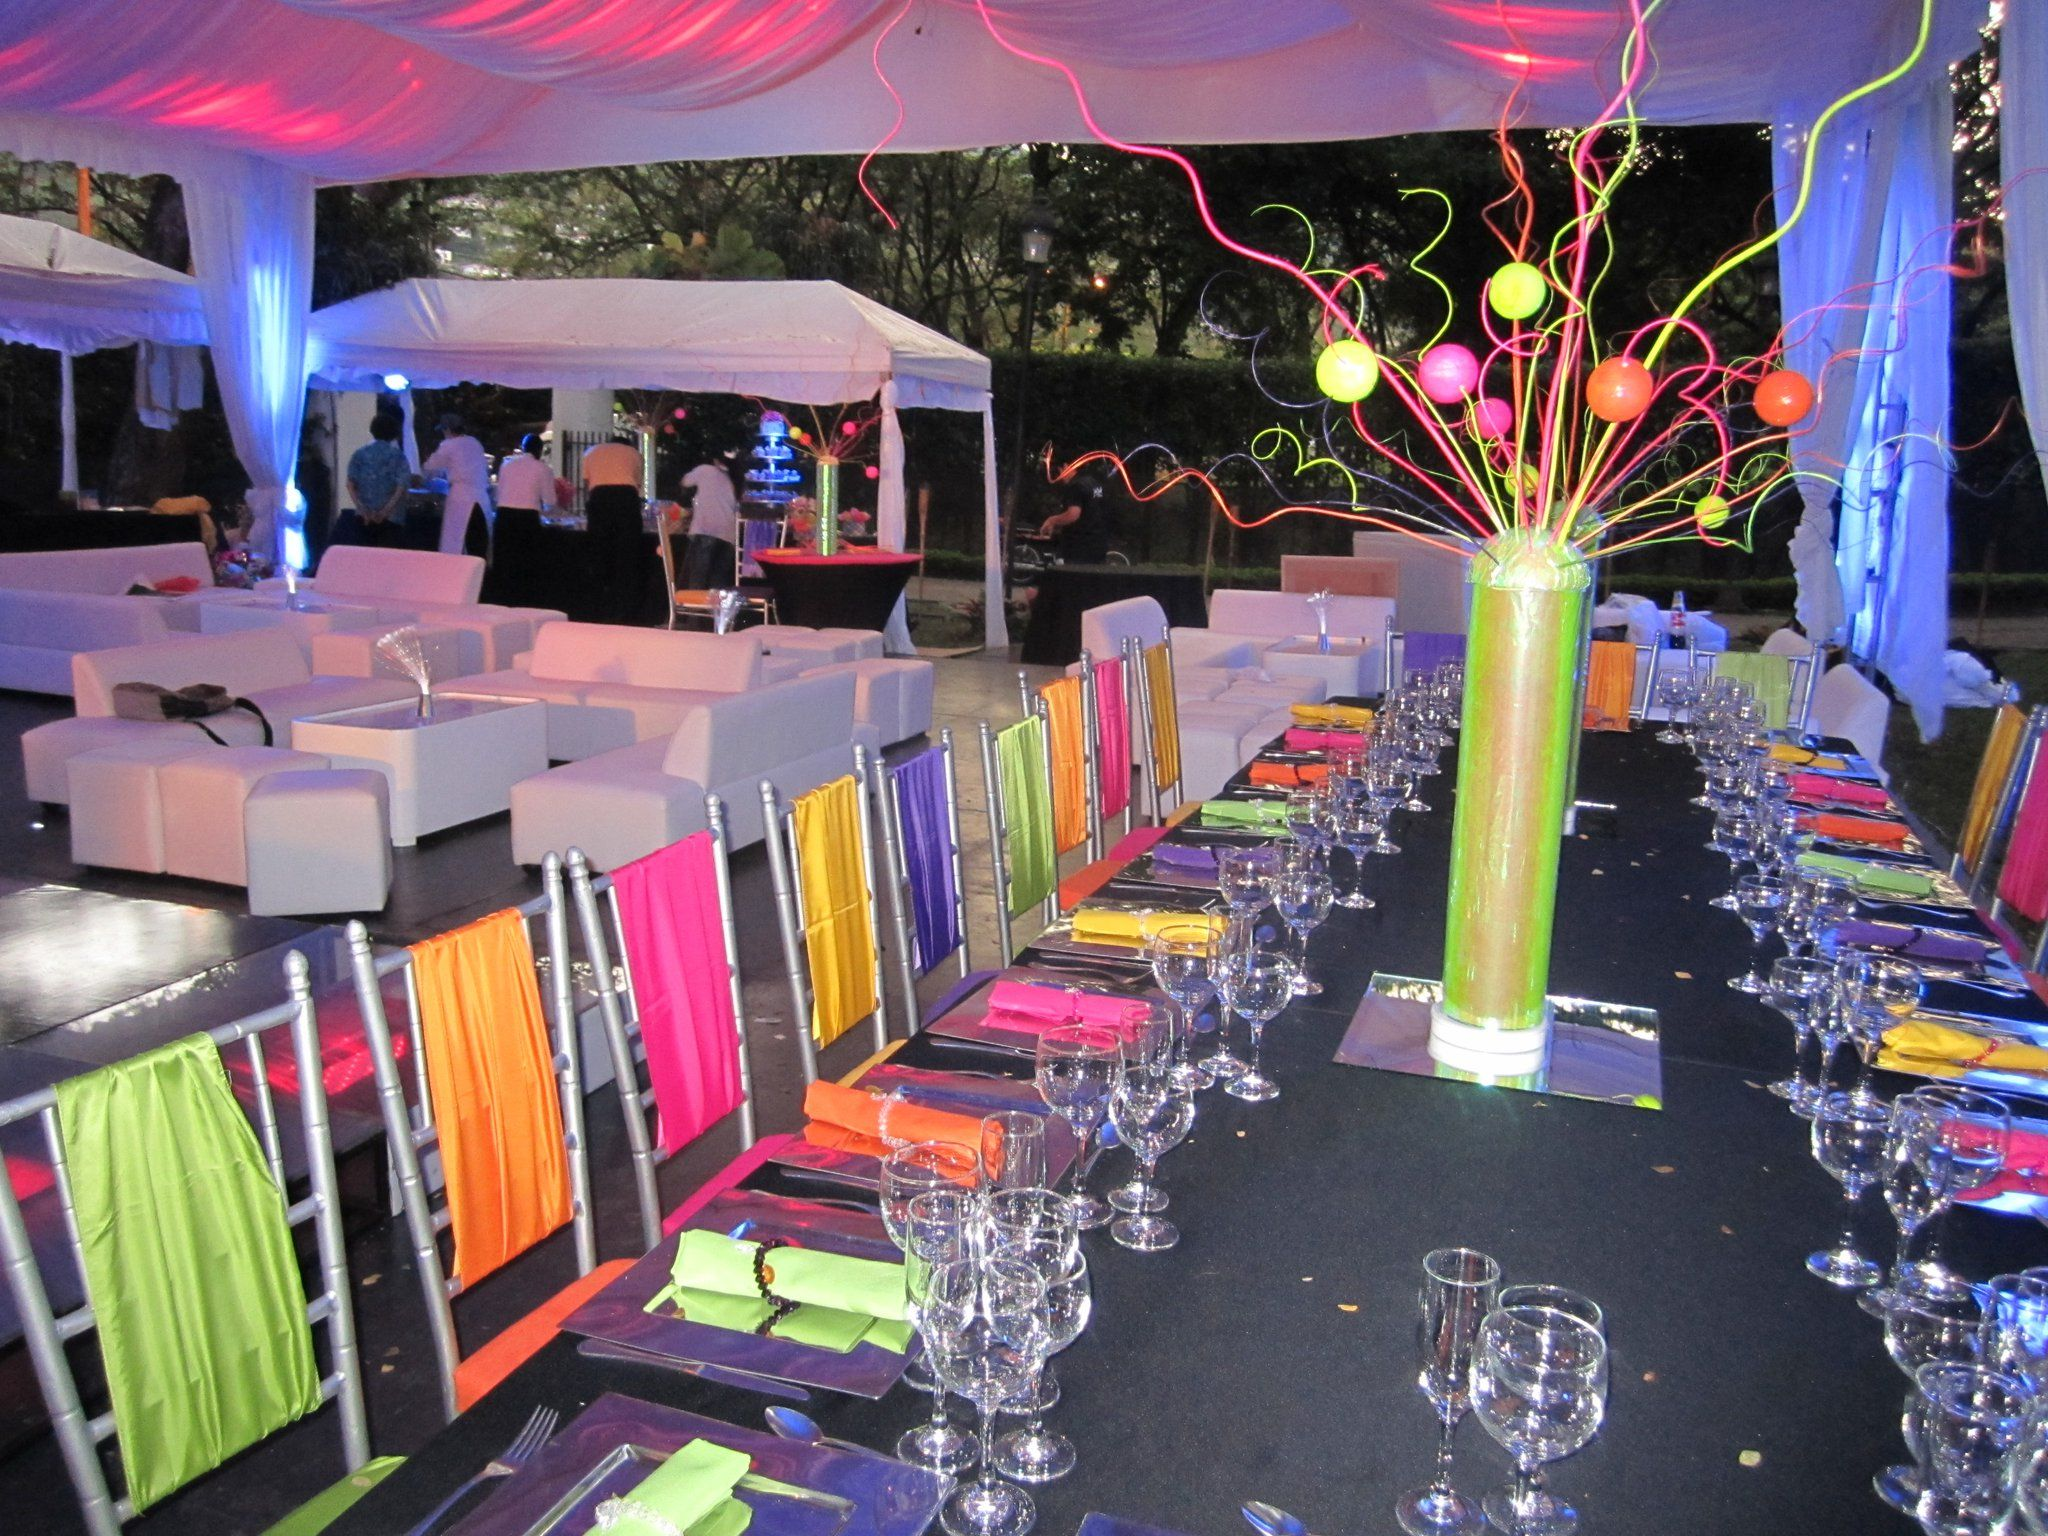 Decoraci n fiesta neon ideas para fiesta pinterest for Decoracion e